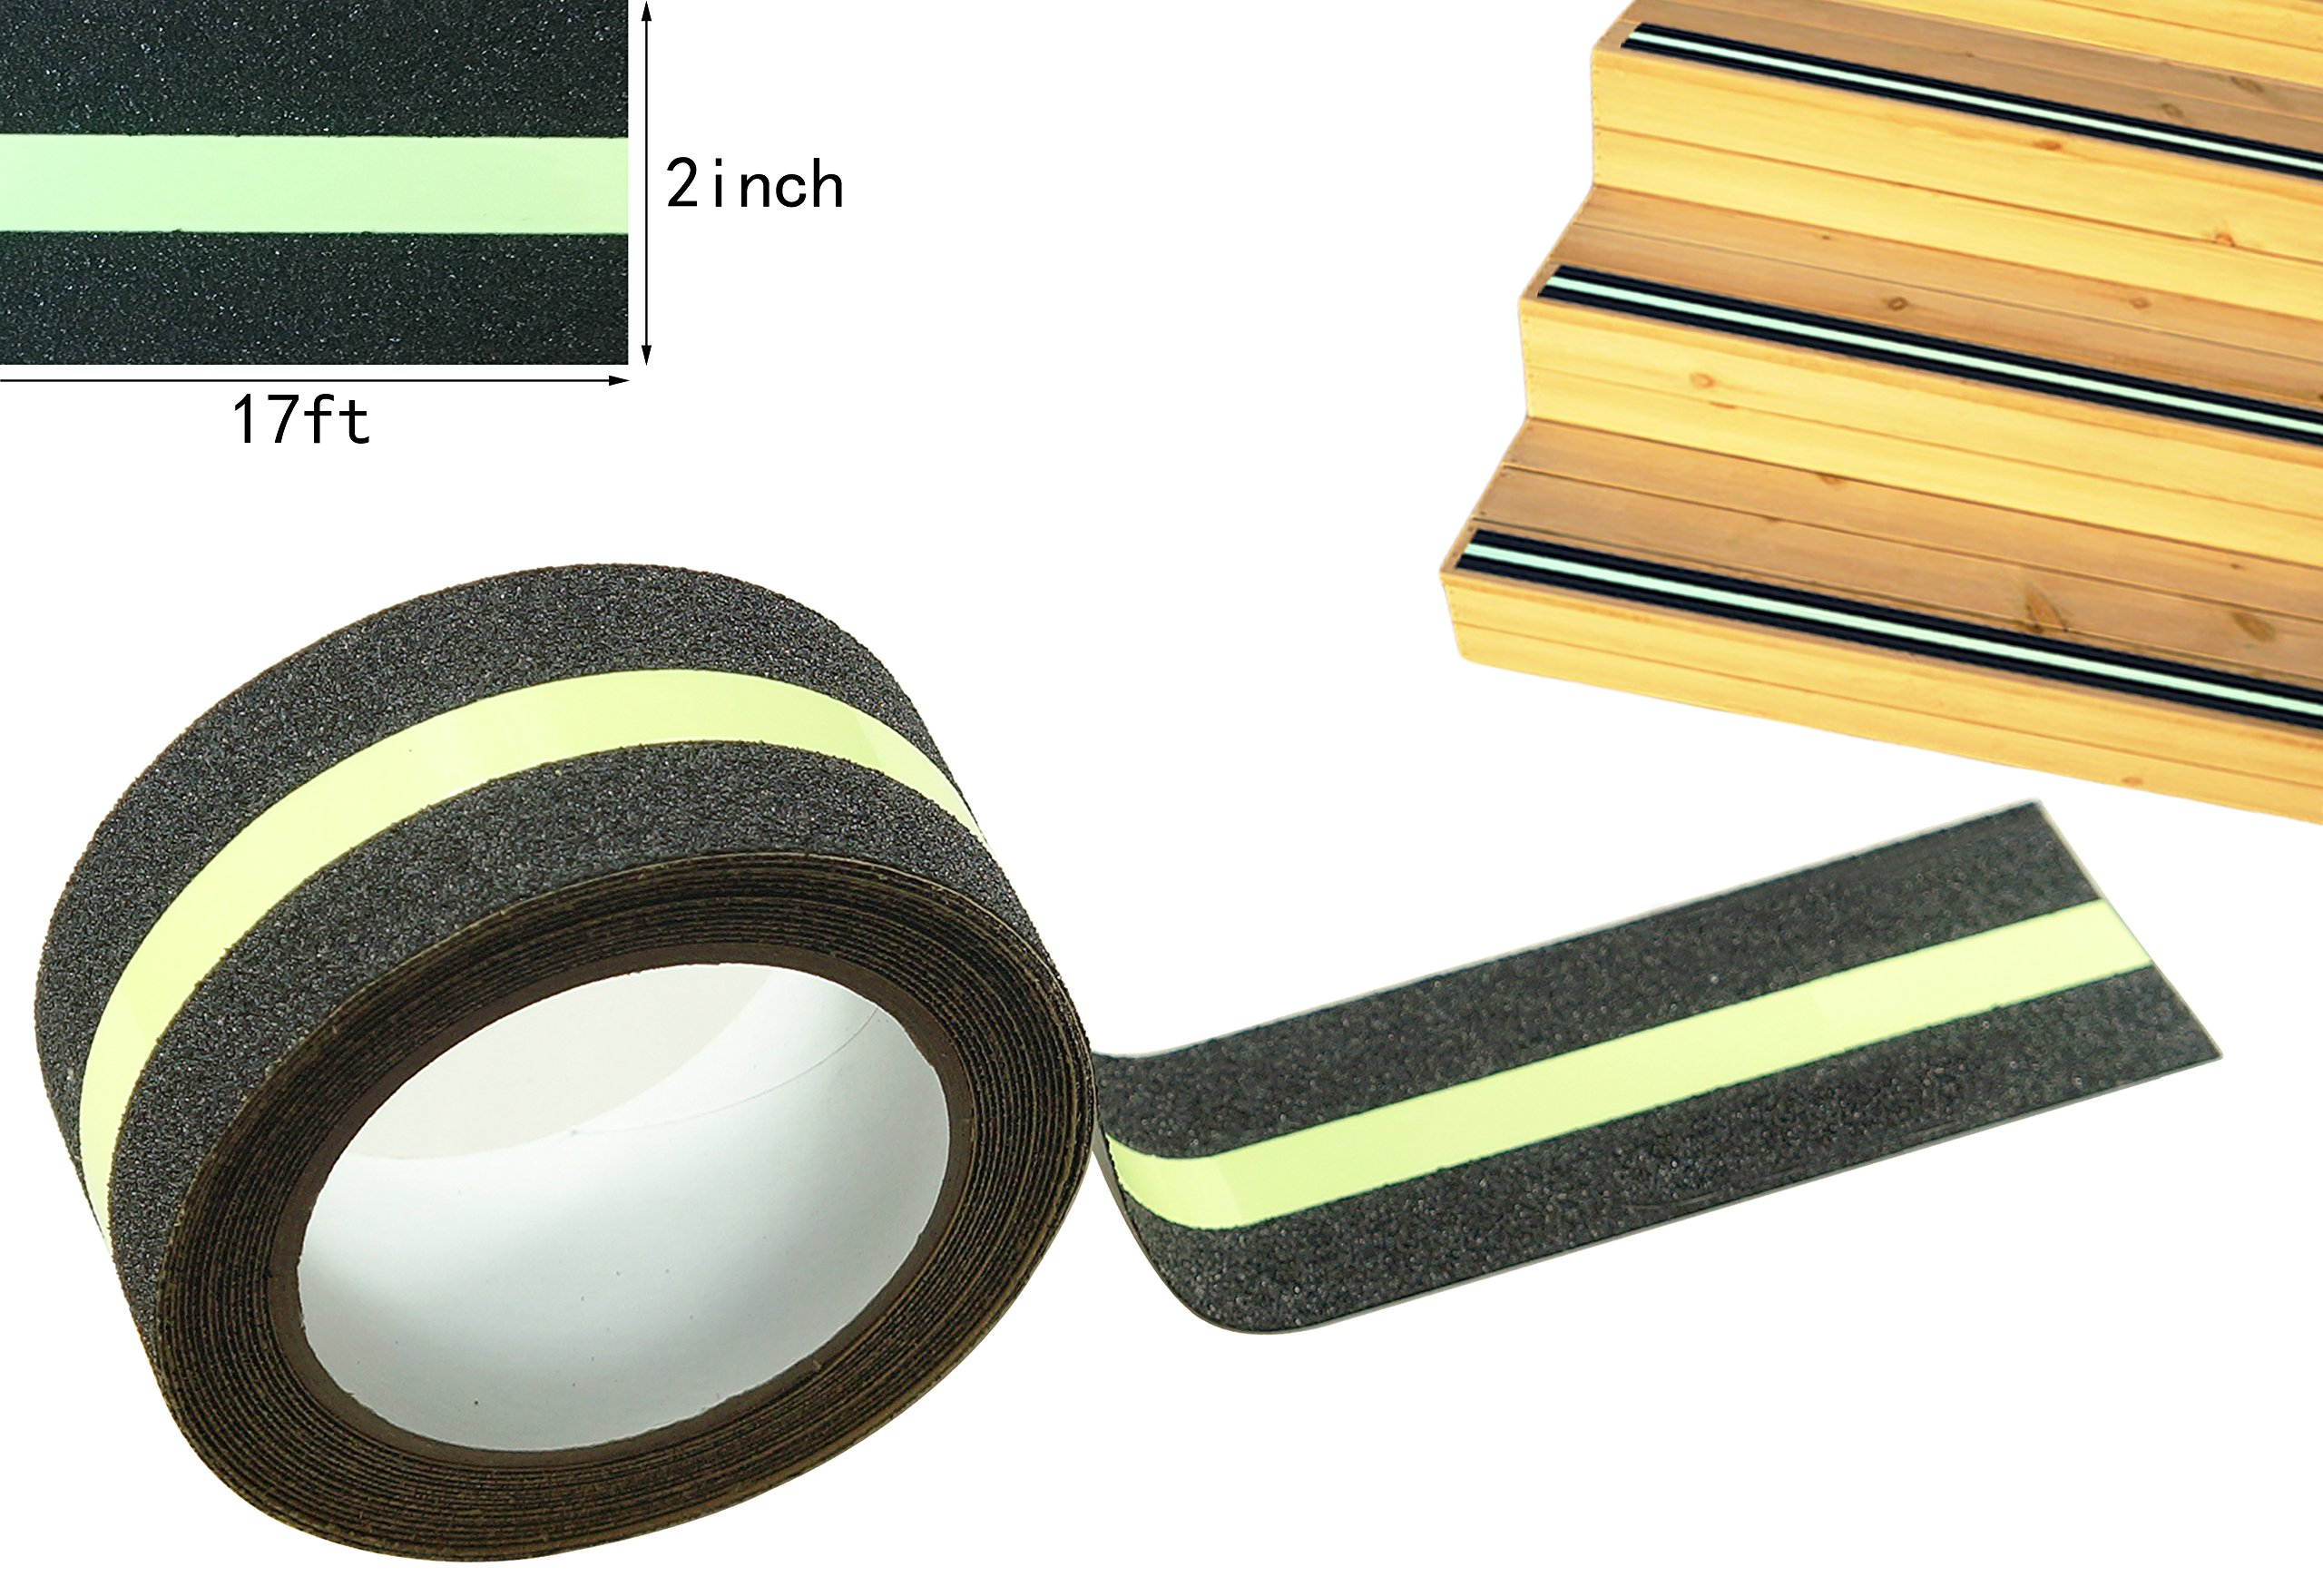 Anti Slip Traction Tape, None Skid Glow in The Dark Safety Walk Tape with 3M Best Grip Abrasive Adhesive for Stairs, Tread Step, Resistant, 2'' Wide 17' Long Roll